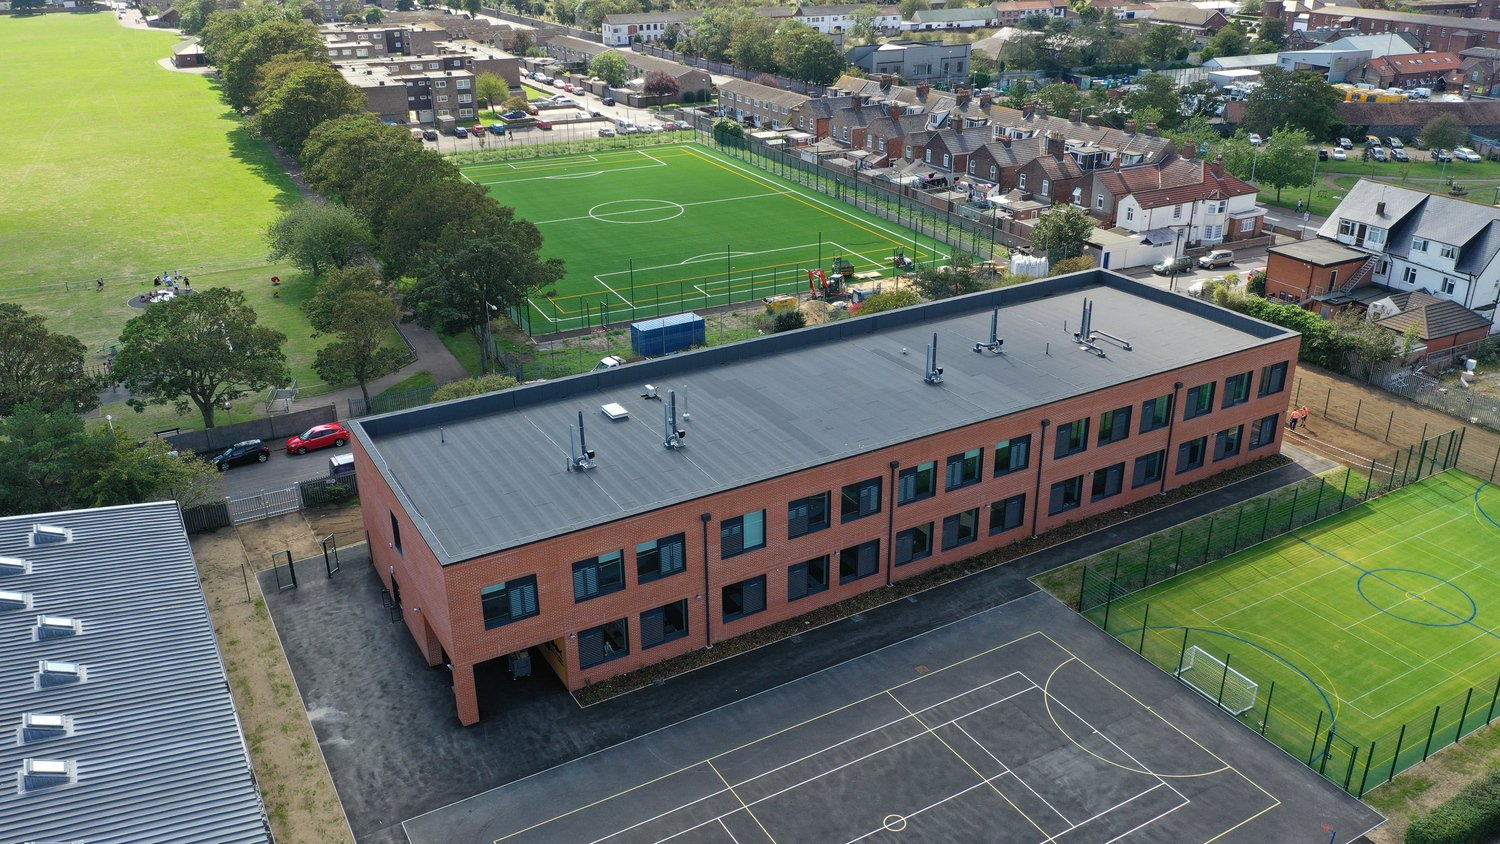 Aerial view of the Great Yarmouth Charter Academy